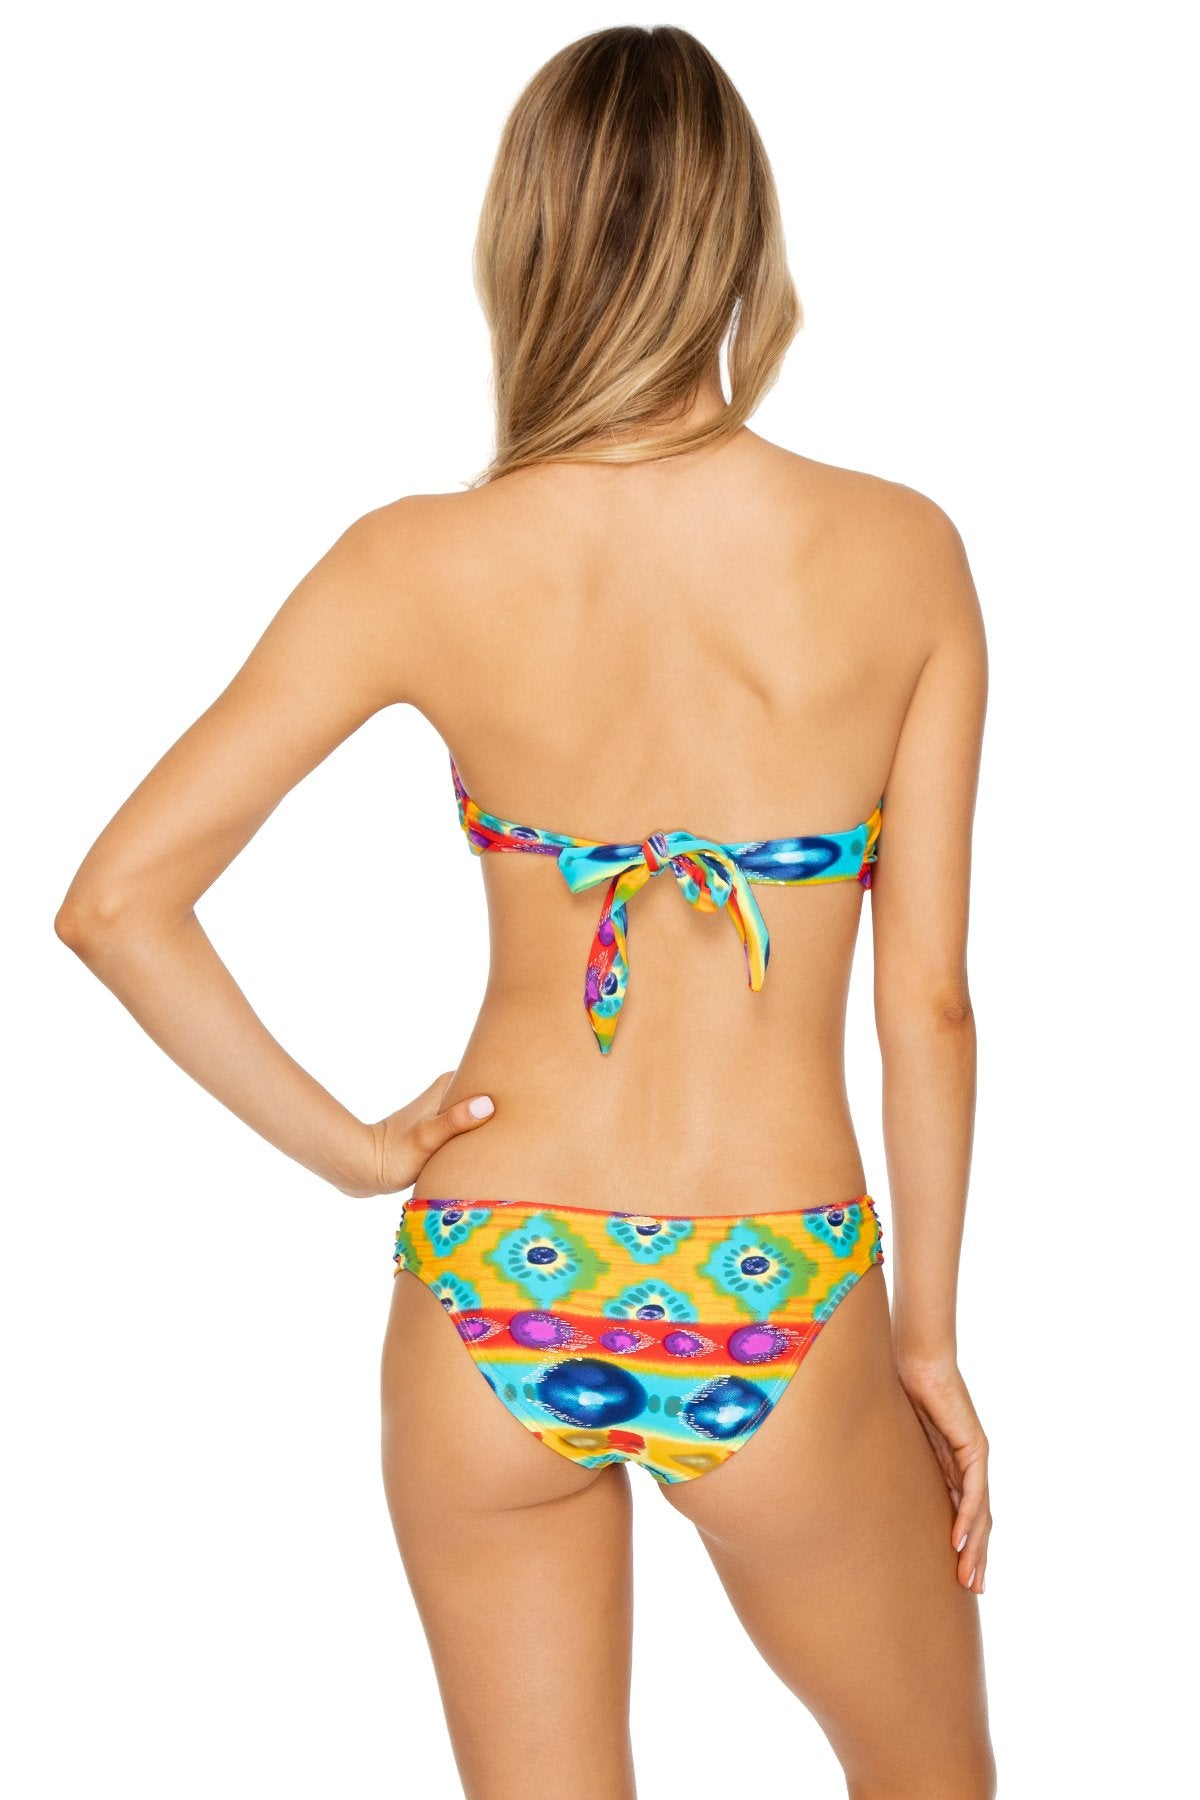 OCHO RIOS - Twist Bandeau Top & Scrunch Side Modrate Bottom • Multicolor